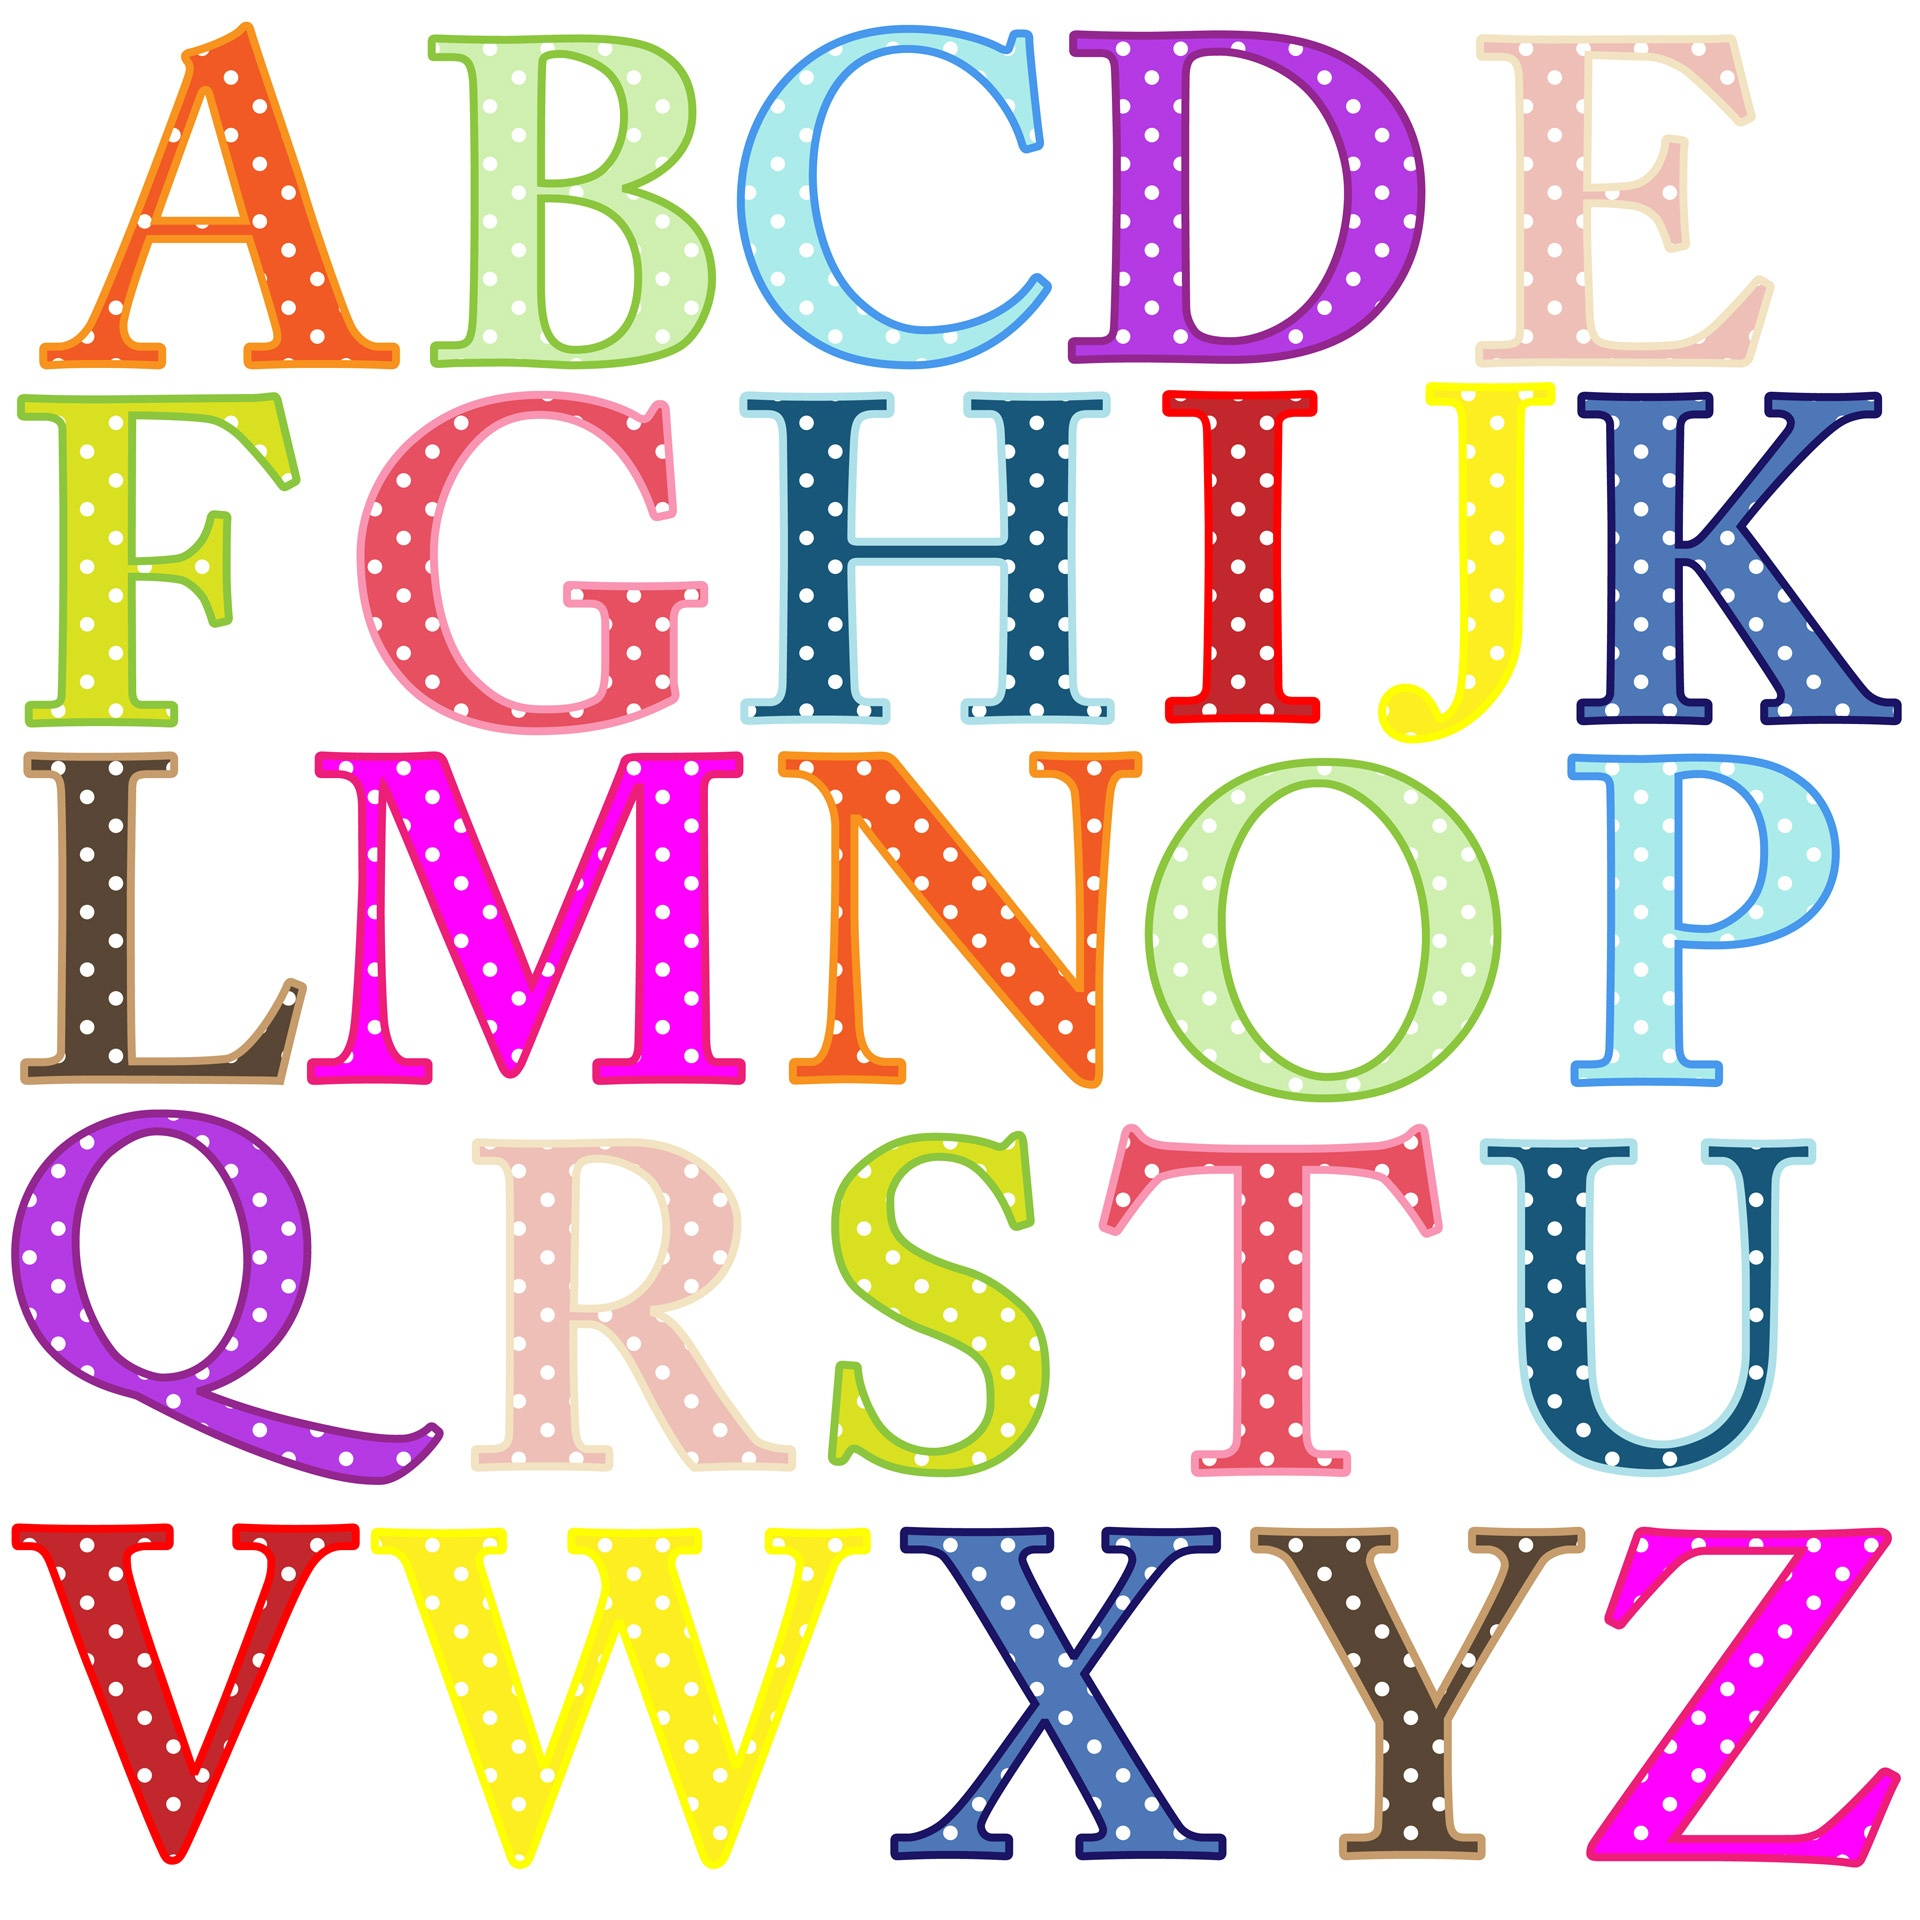 Free Printable Alphabet Cliparts, Download Free Clip Art, Free Clip - Free Printable Photo Letter Art